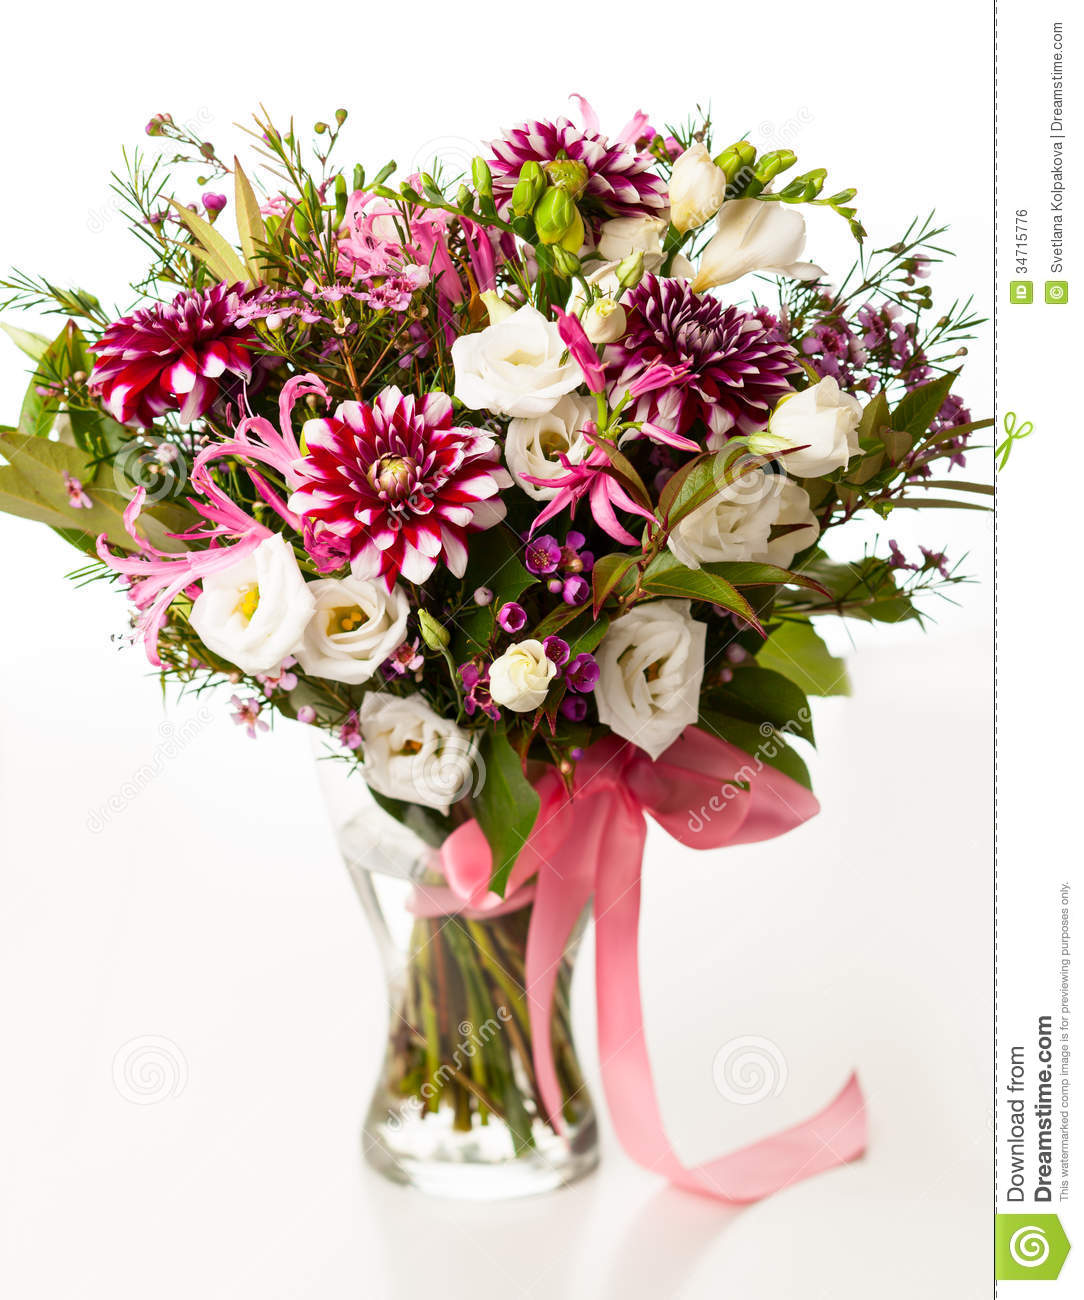 Bouquet of flowers stock photo. Image of bunch, beautiful - 34715776